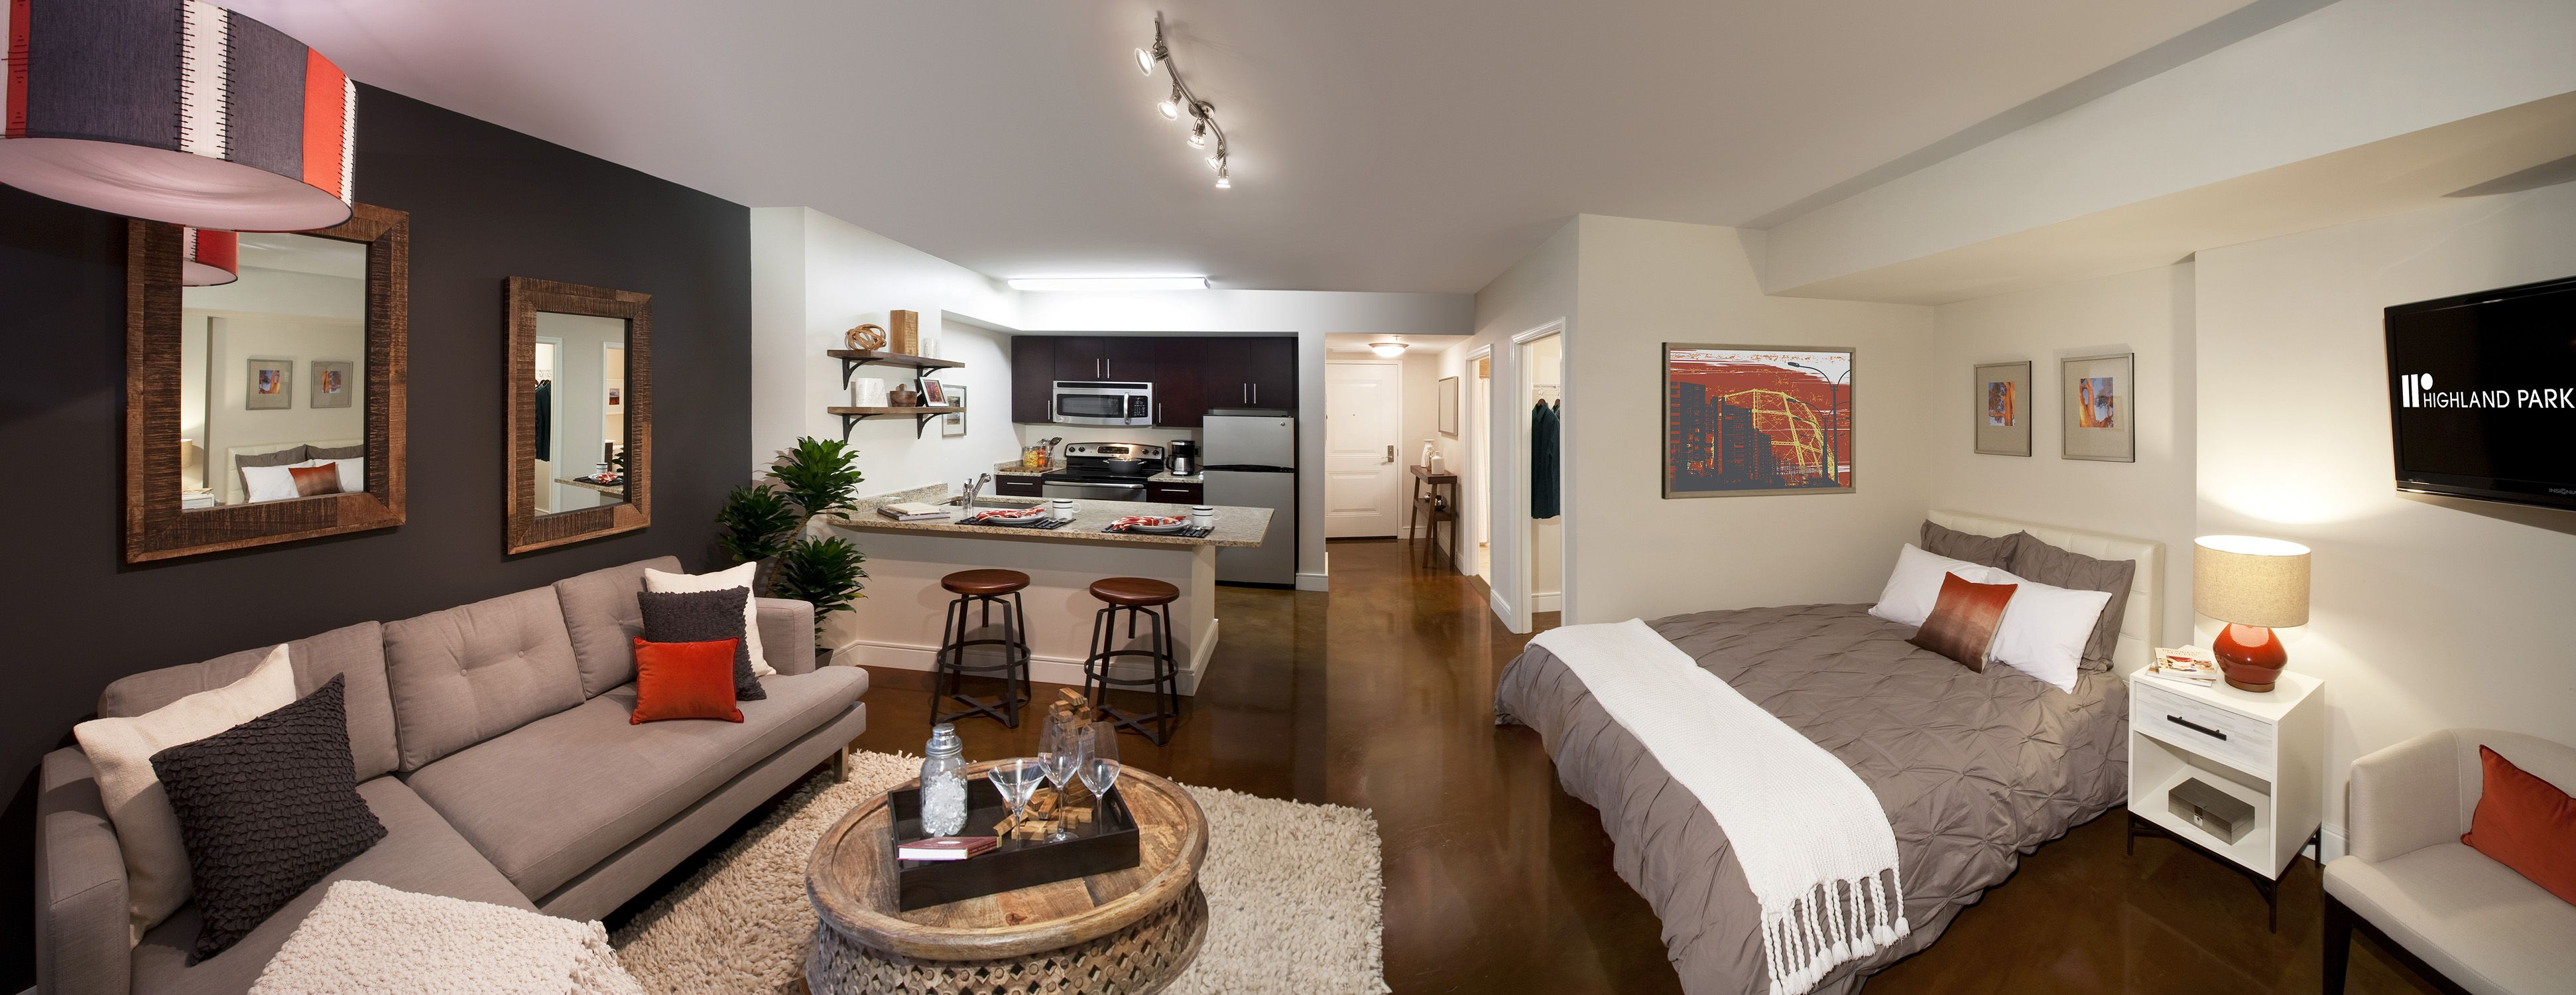 Highland Park At Columbia Heights Metro Photogallery 39 Luxury Apartments Apartment Apartments For Rent